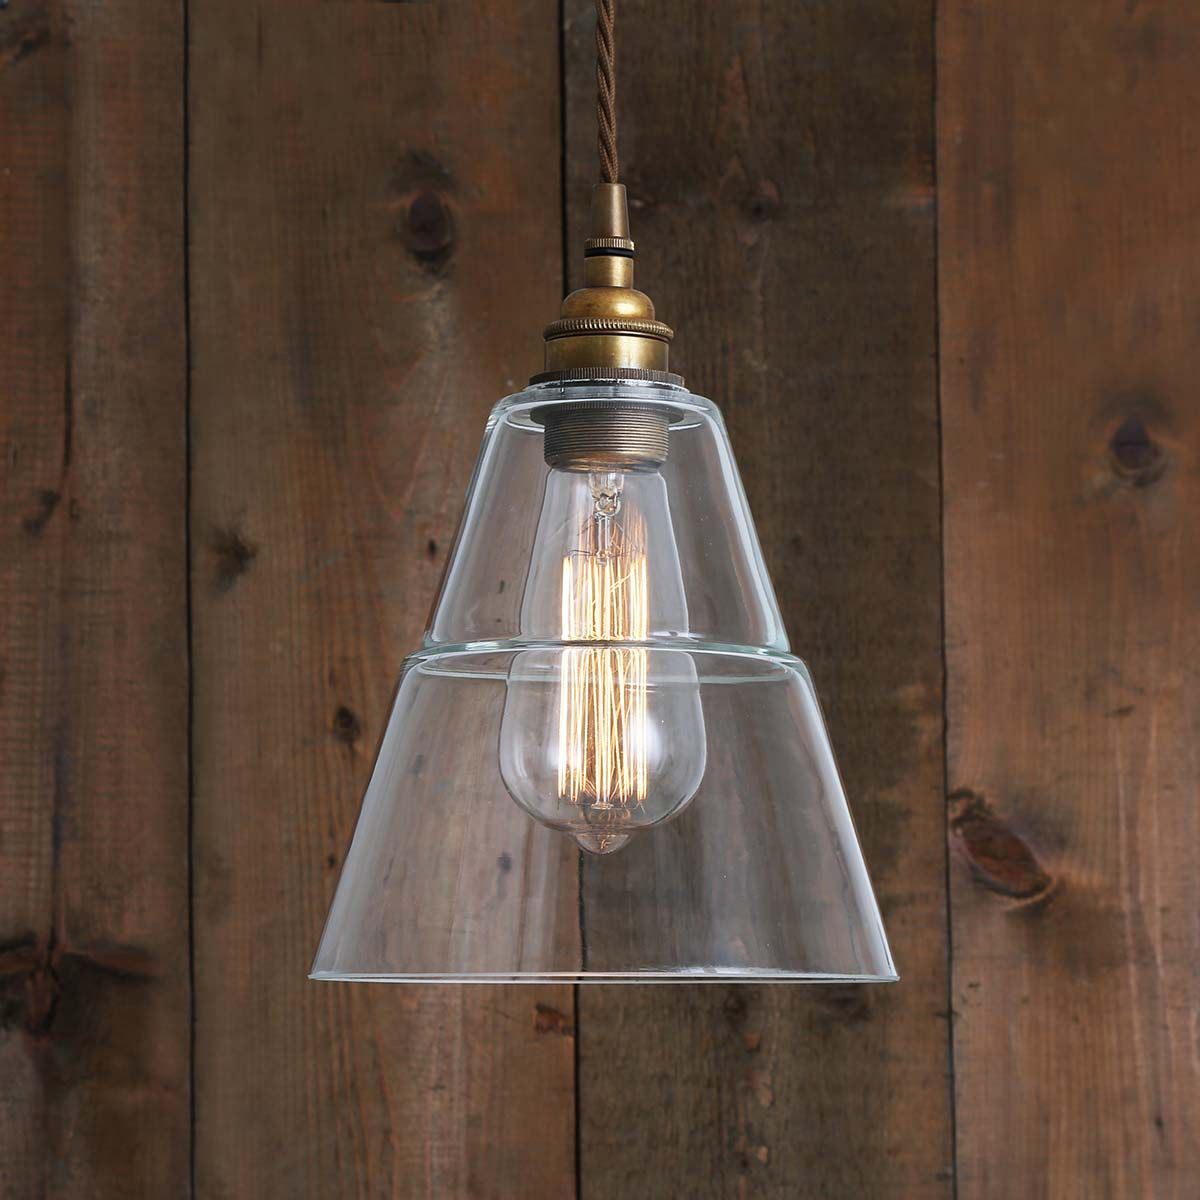 Suspension en verre et laiton antique Lyx Mullan Lighting